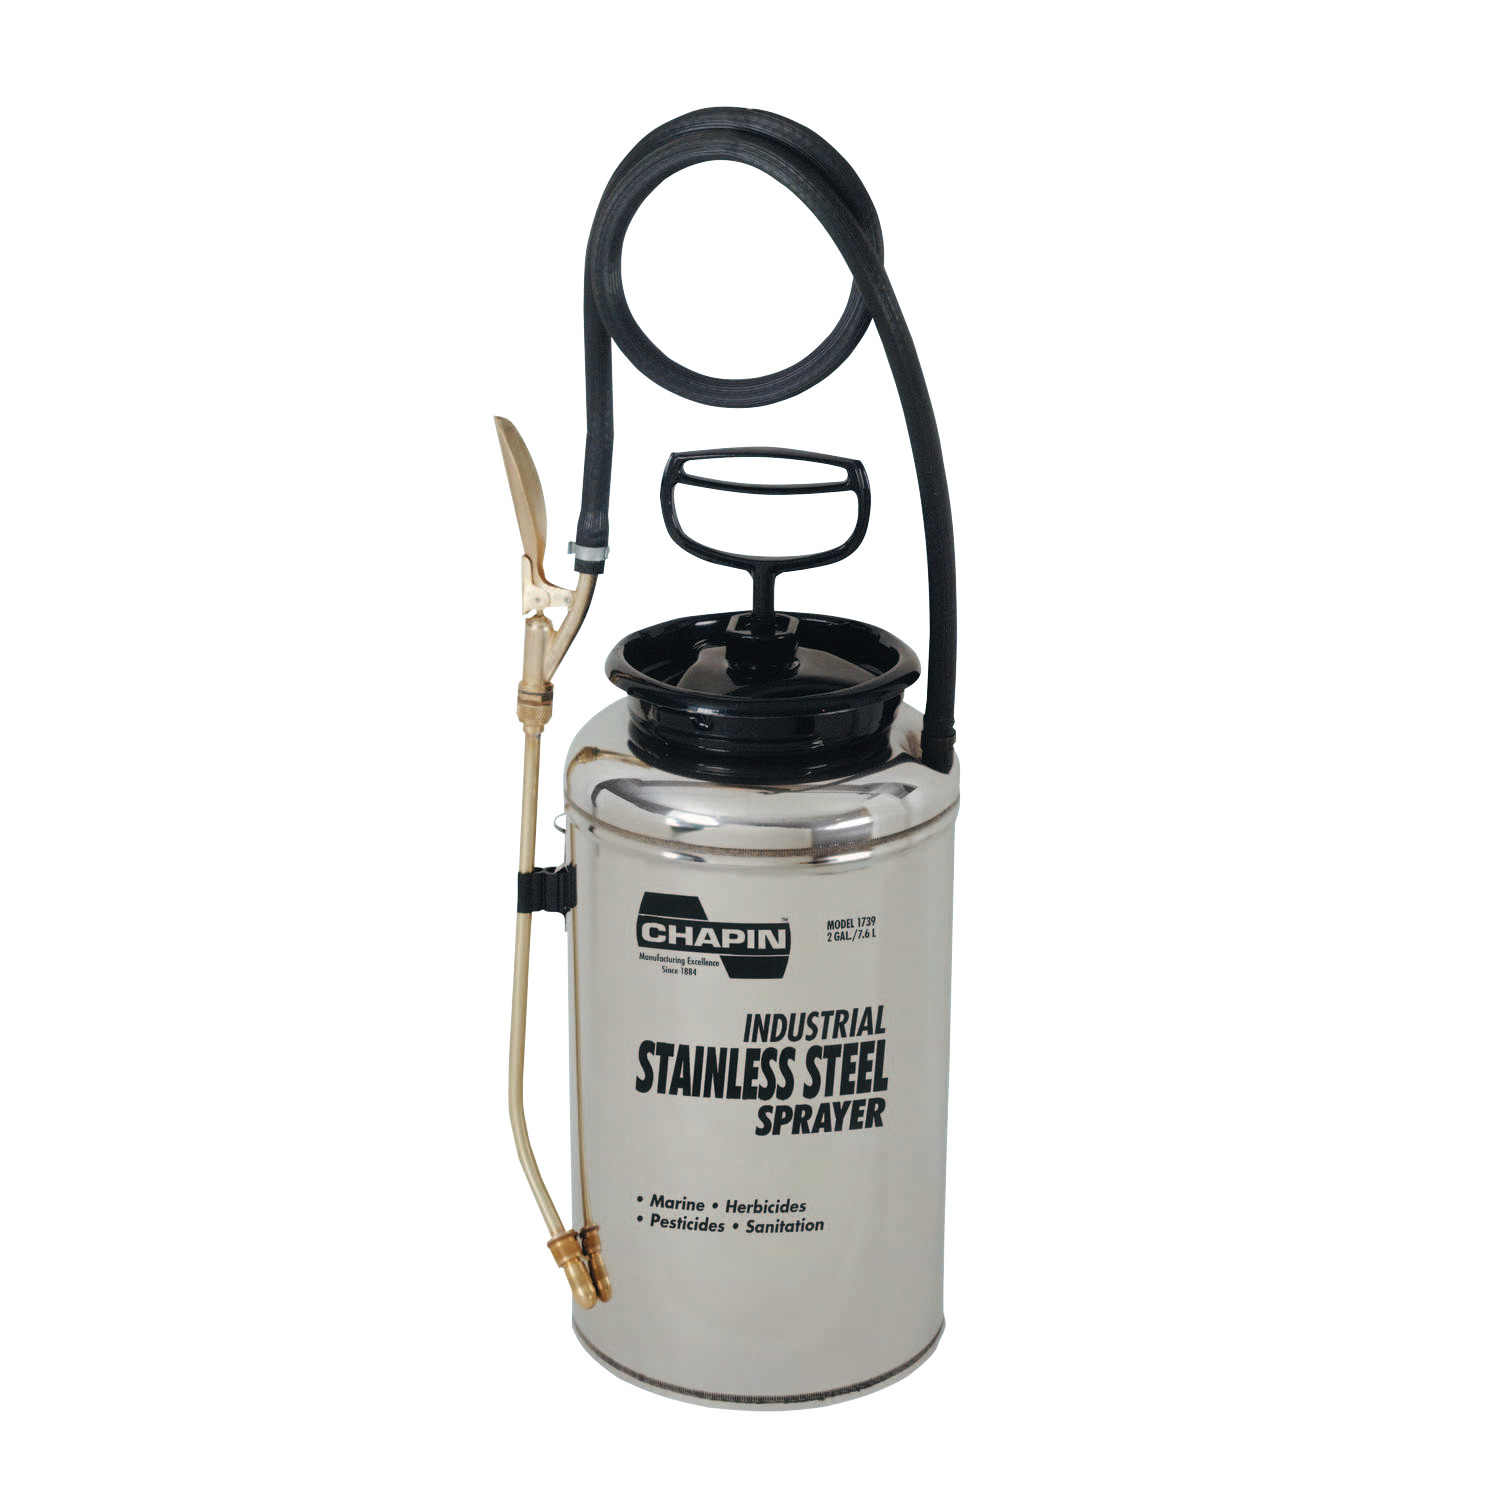 Chapin Stainless Steel Sprayer, 2 gal, 12 in Extension, 42 in Hose